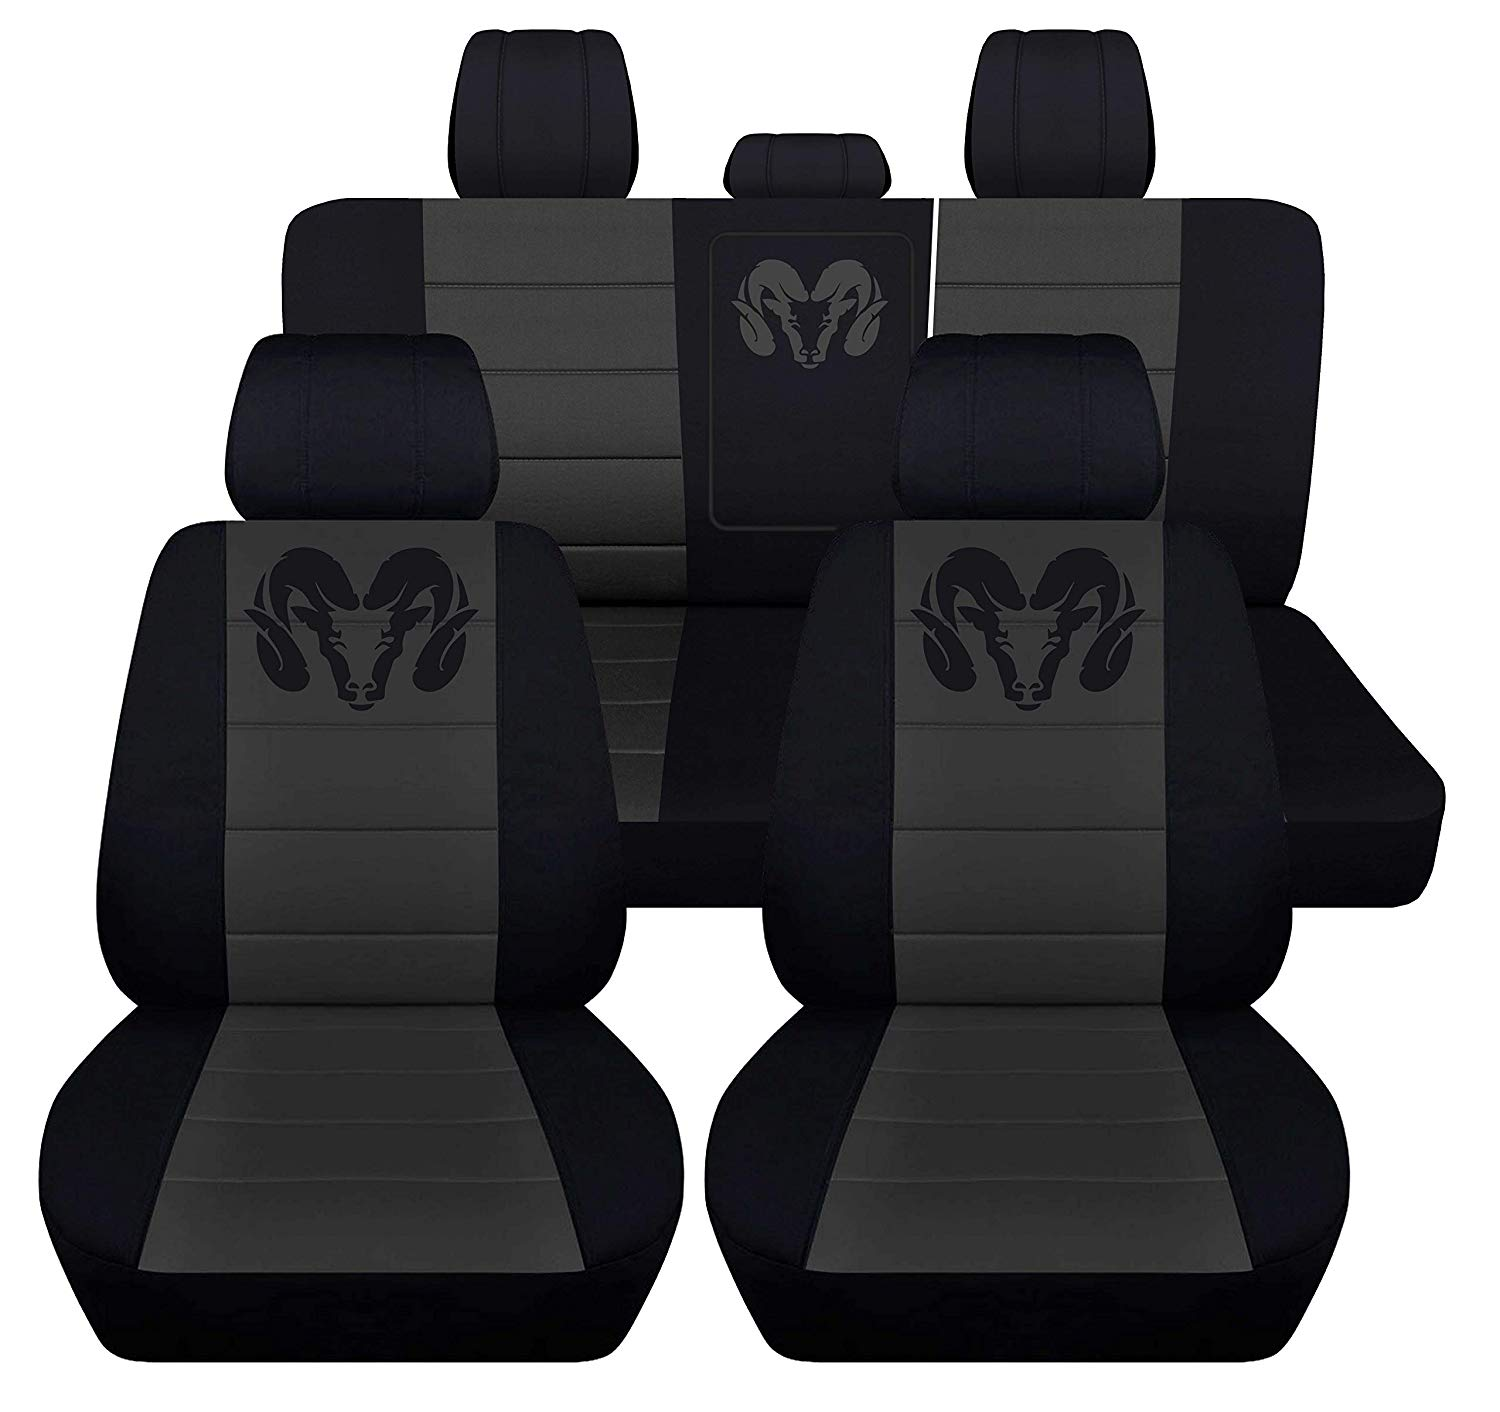 Swell Dodge Ram 1500 Seats Covers Top Rated Seat Covers For Dodge Ram 1500 Buying Guide Caraccident5 Cool Chair Designs And Ideas Caraccident5Info